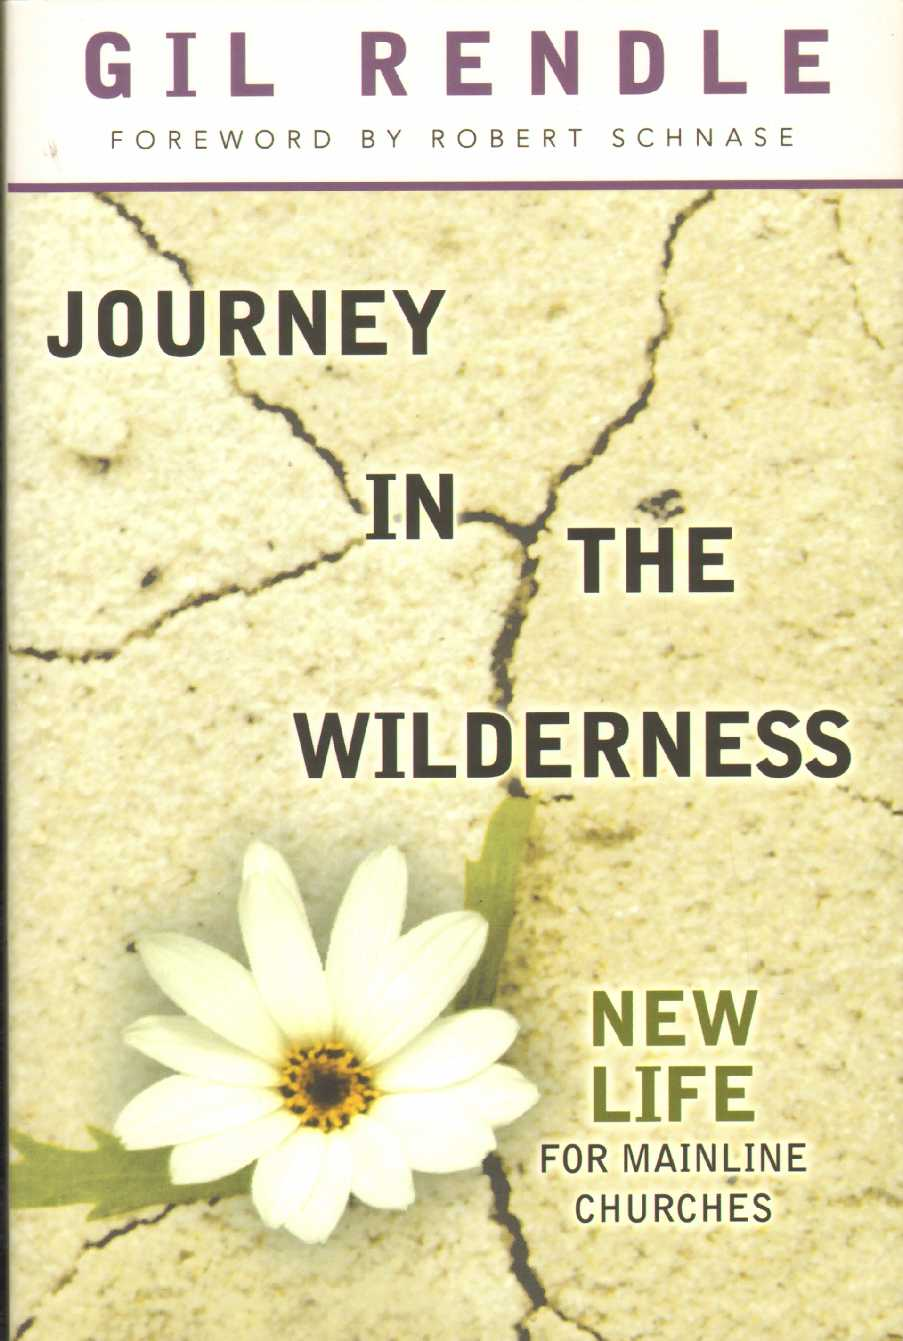 Image for JOURNEY IN THE WILDERNESS New Life for Mainline Churches